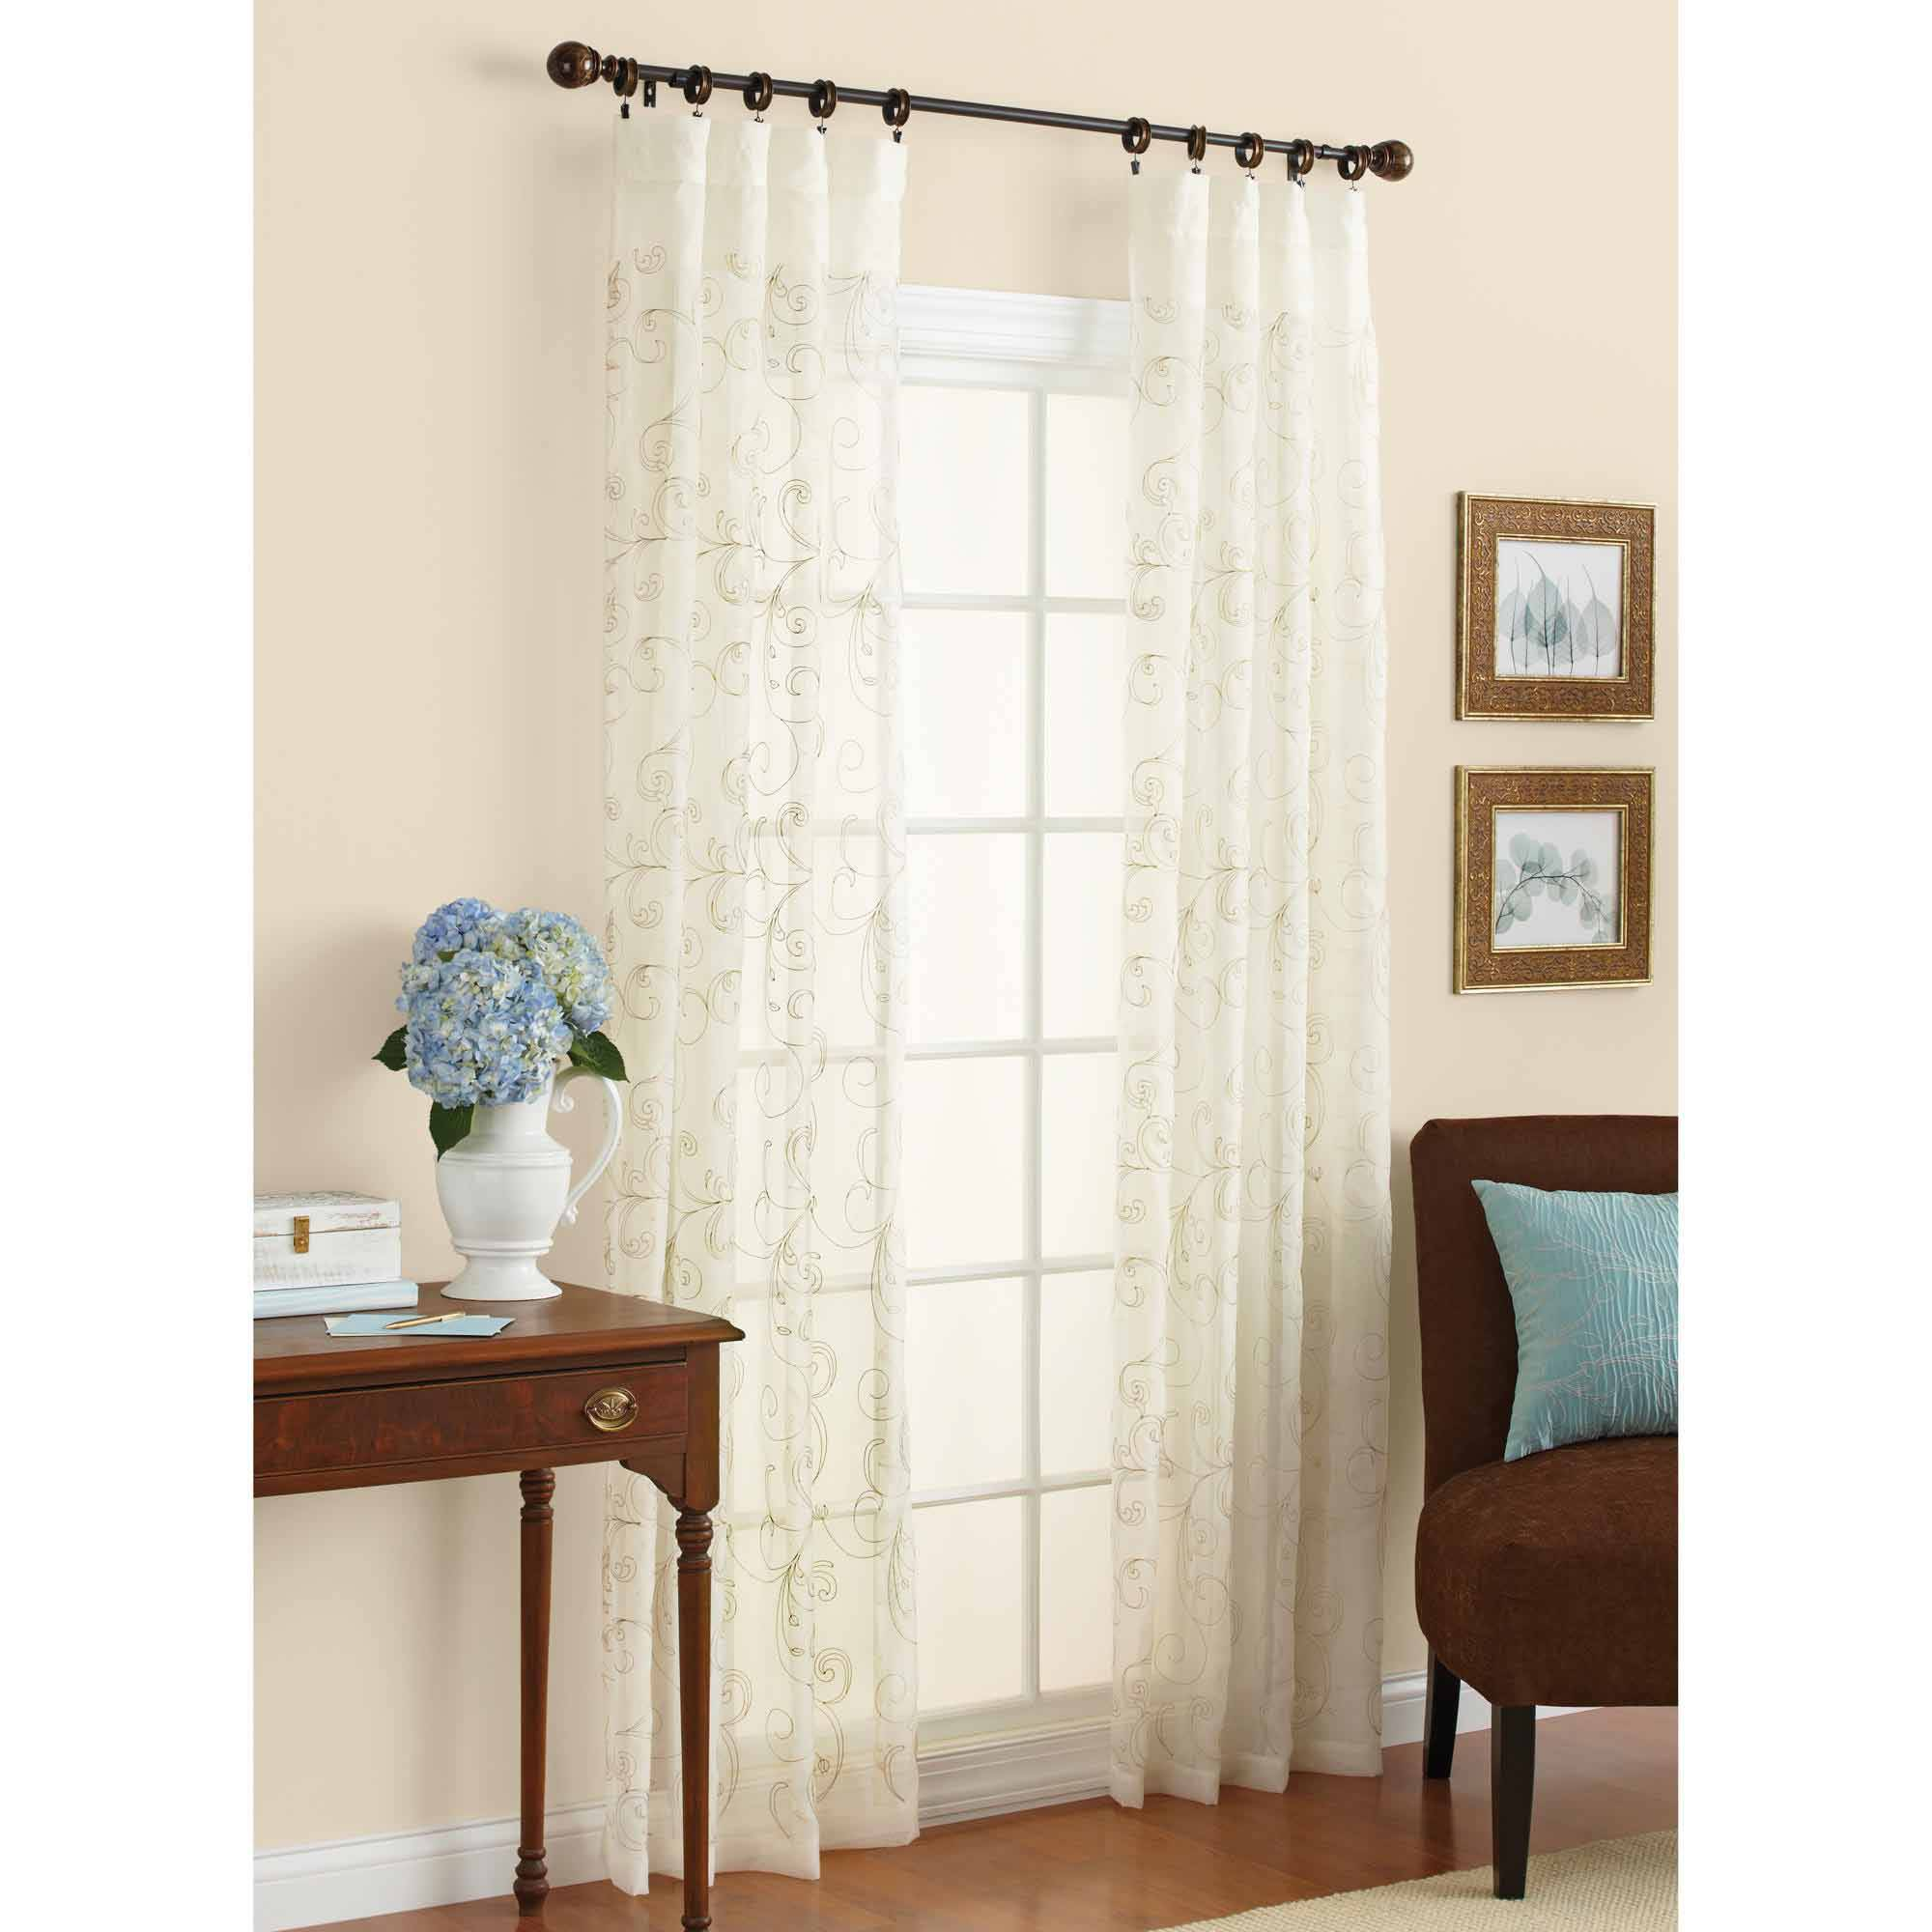 Better Homes and Gardens Embroidered Sheer Curtain Panel by